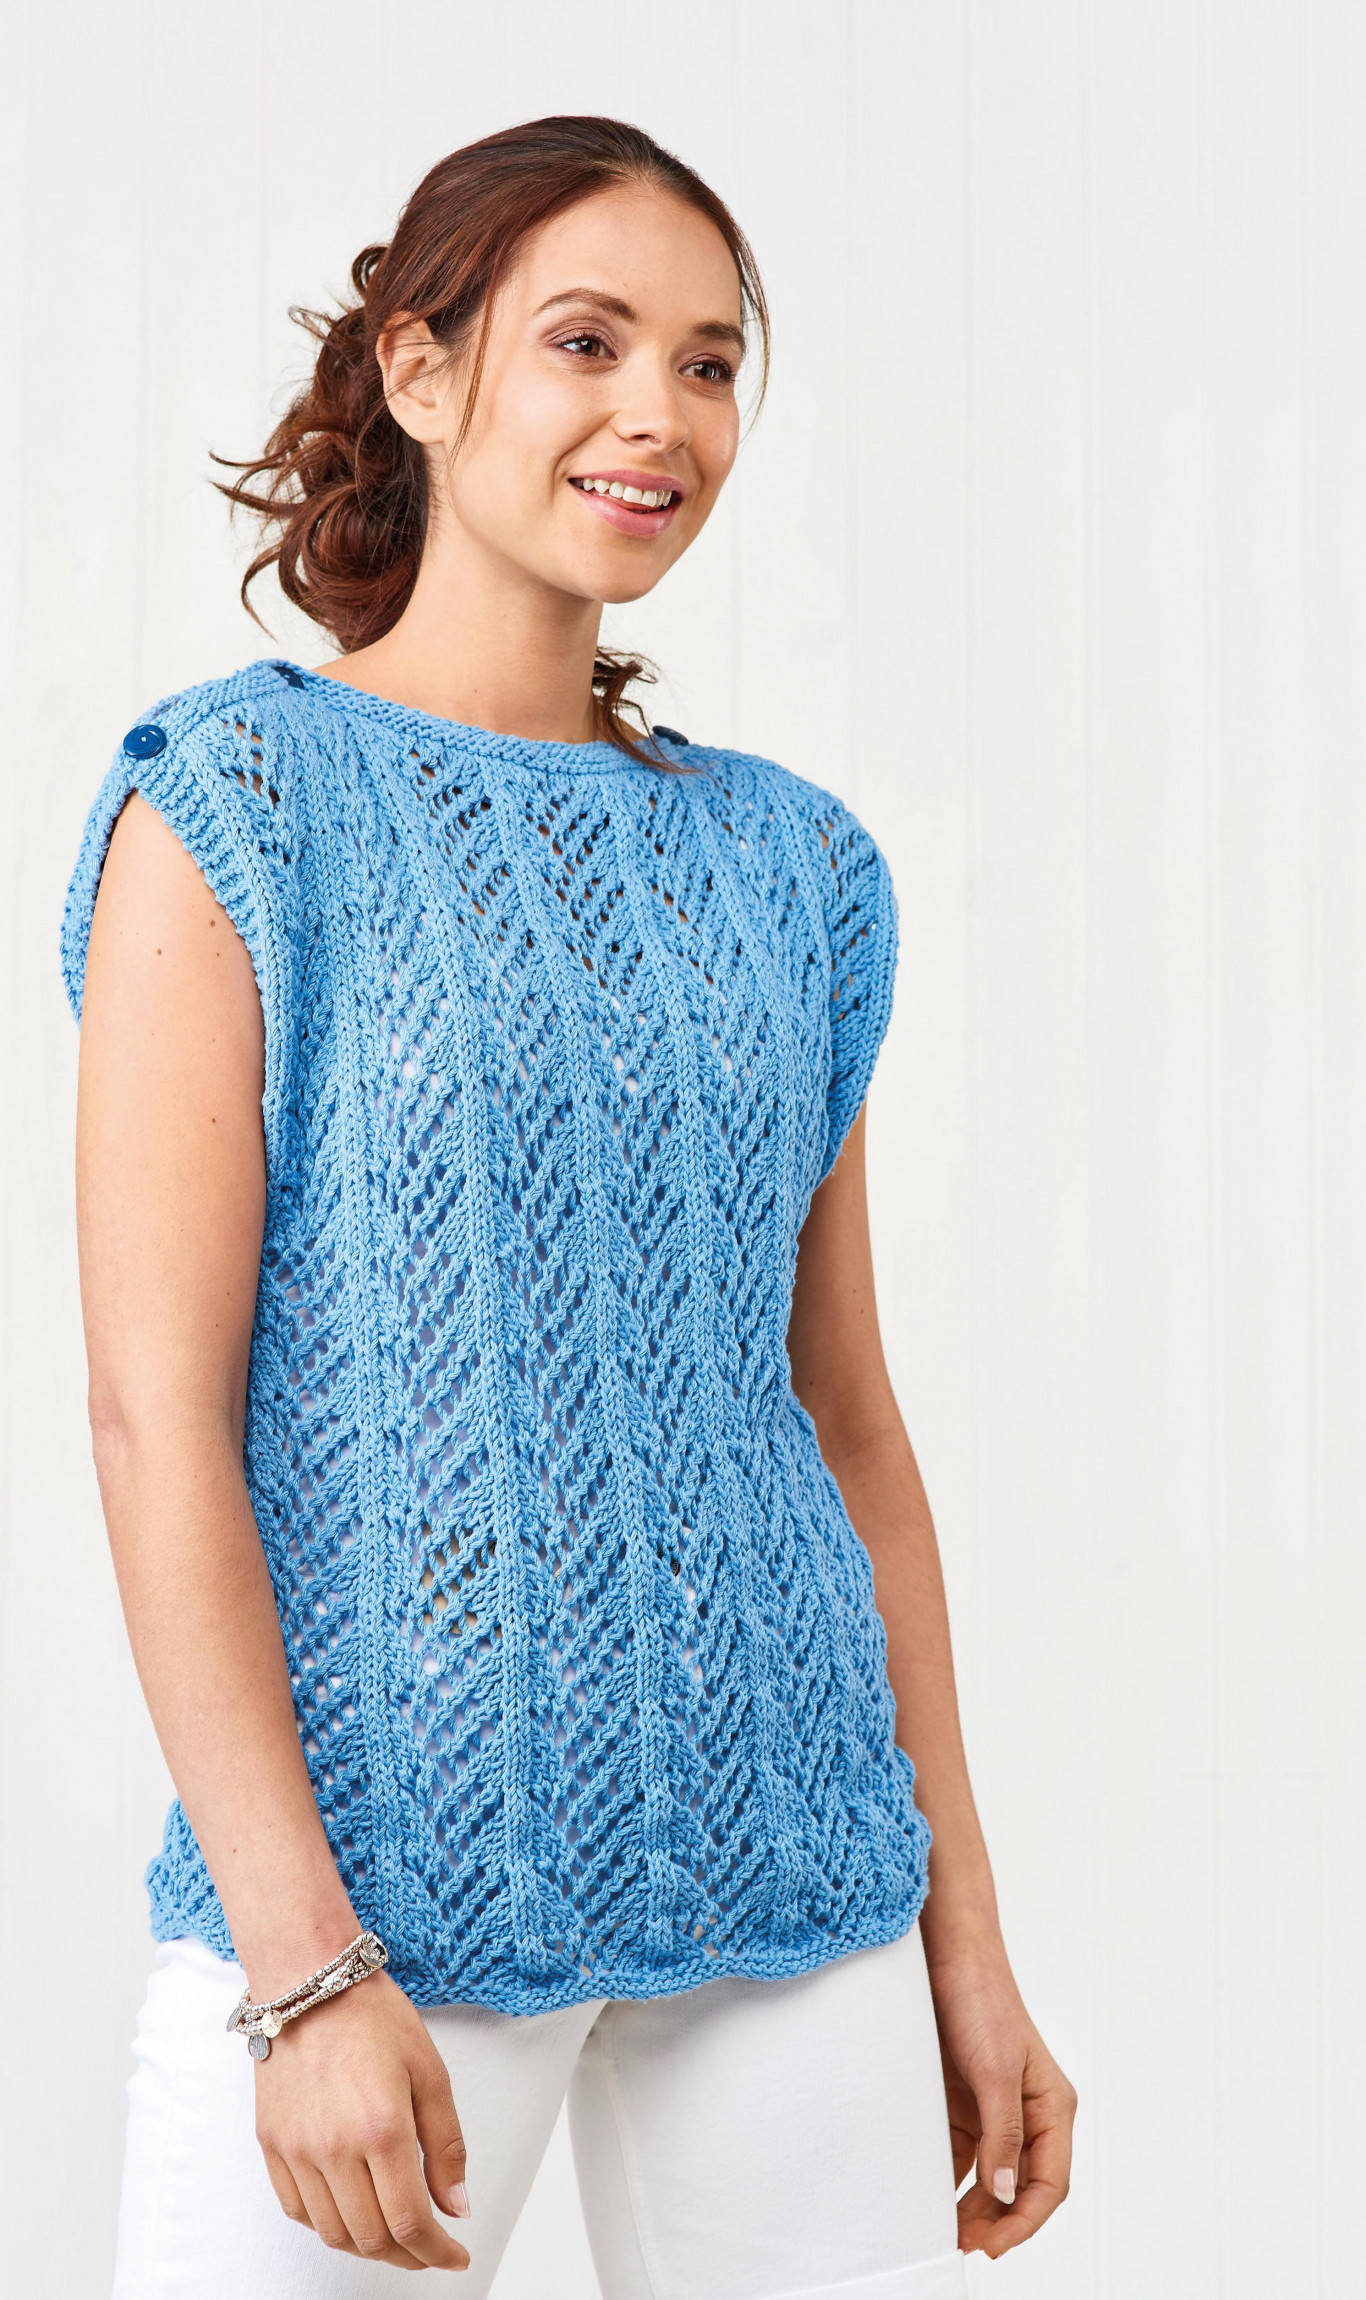 Eco Cotton Easy Knitted Top   Knitting Patterns   Let's ...